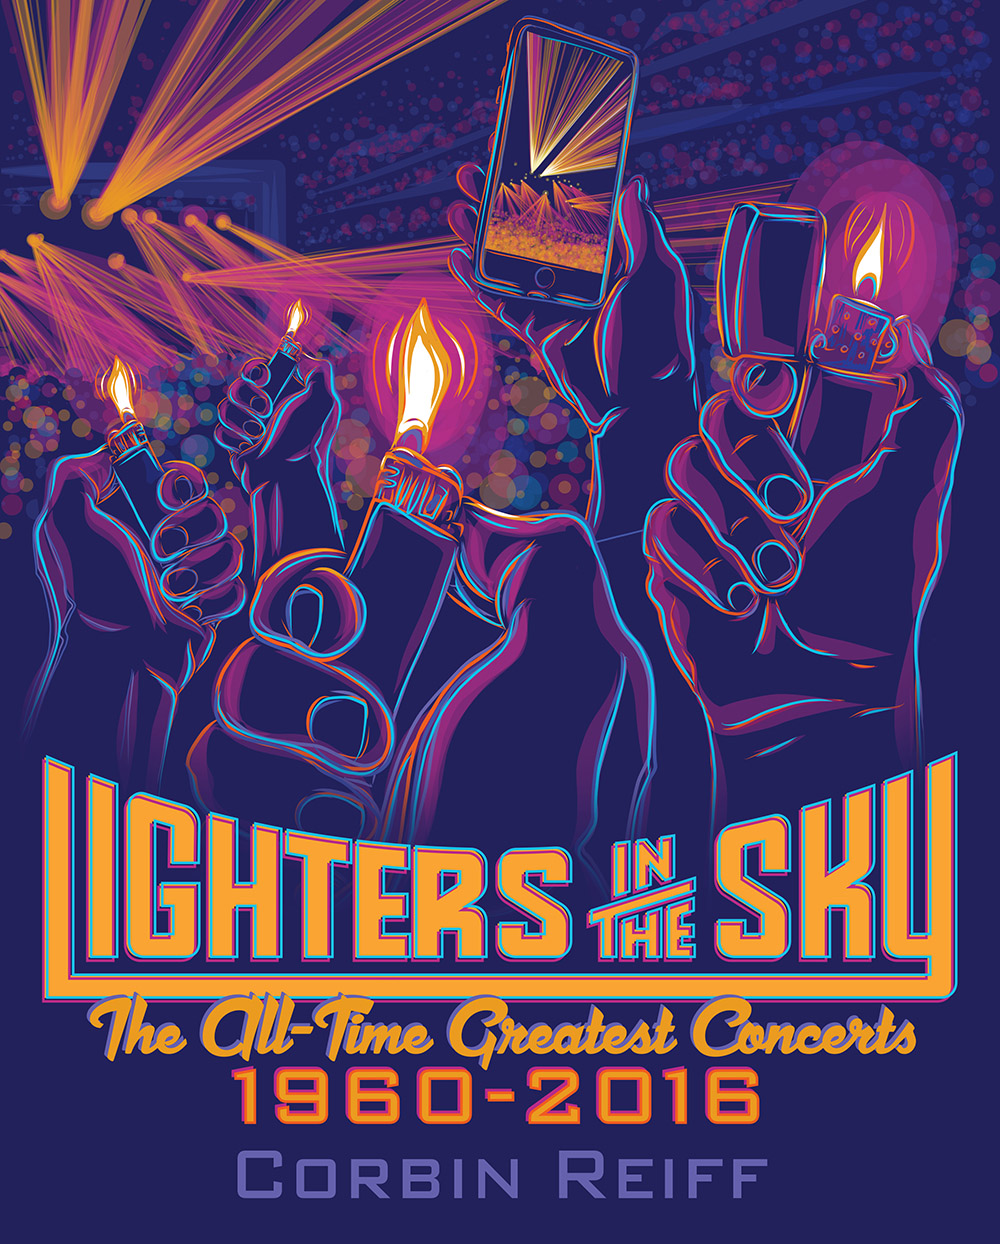 lightersinthesky.com